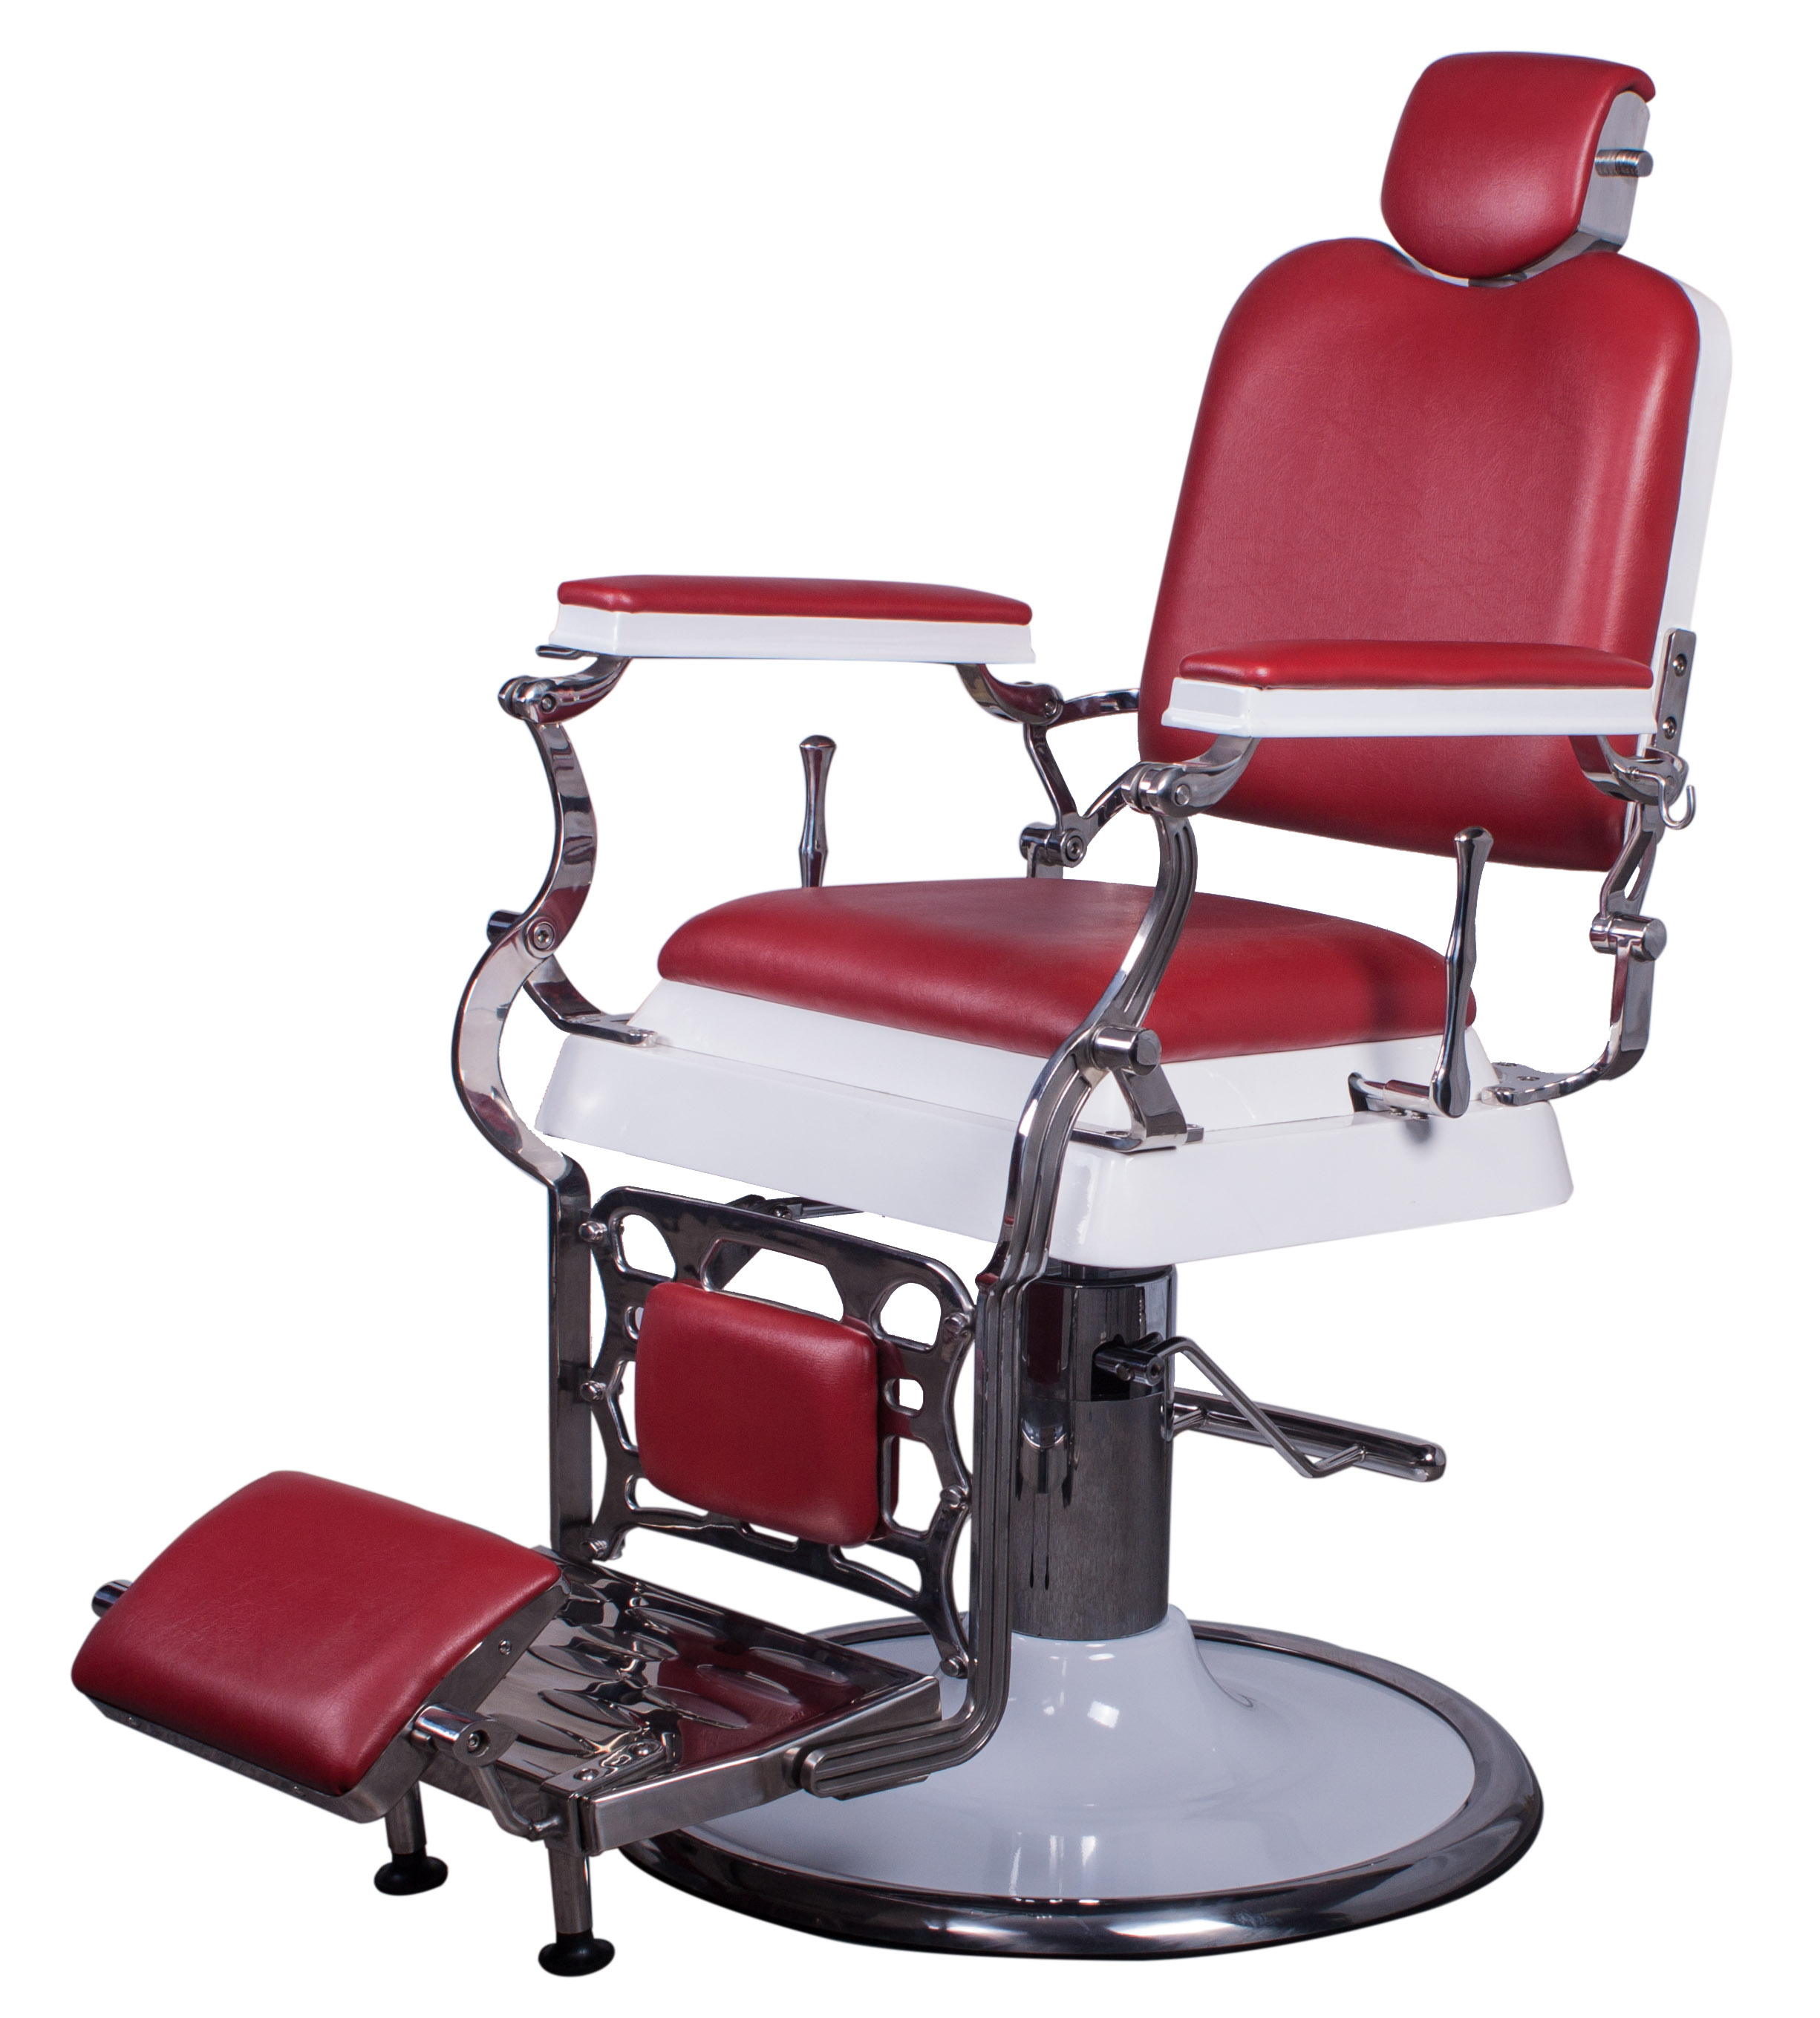 CLEANING A SALON CHAIR, HOW? - Salon Furniture Outlet